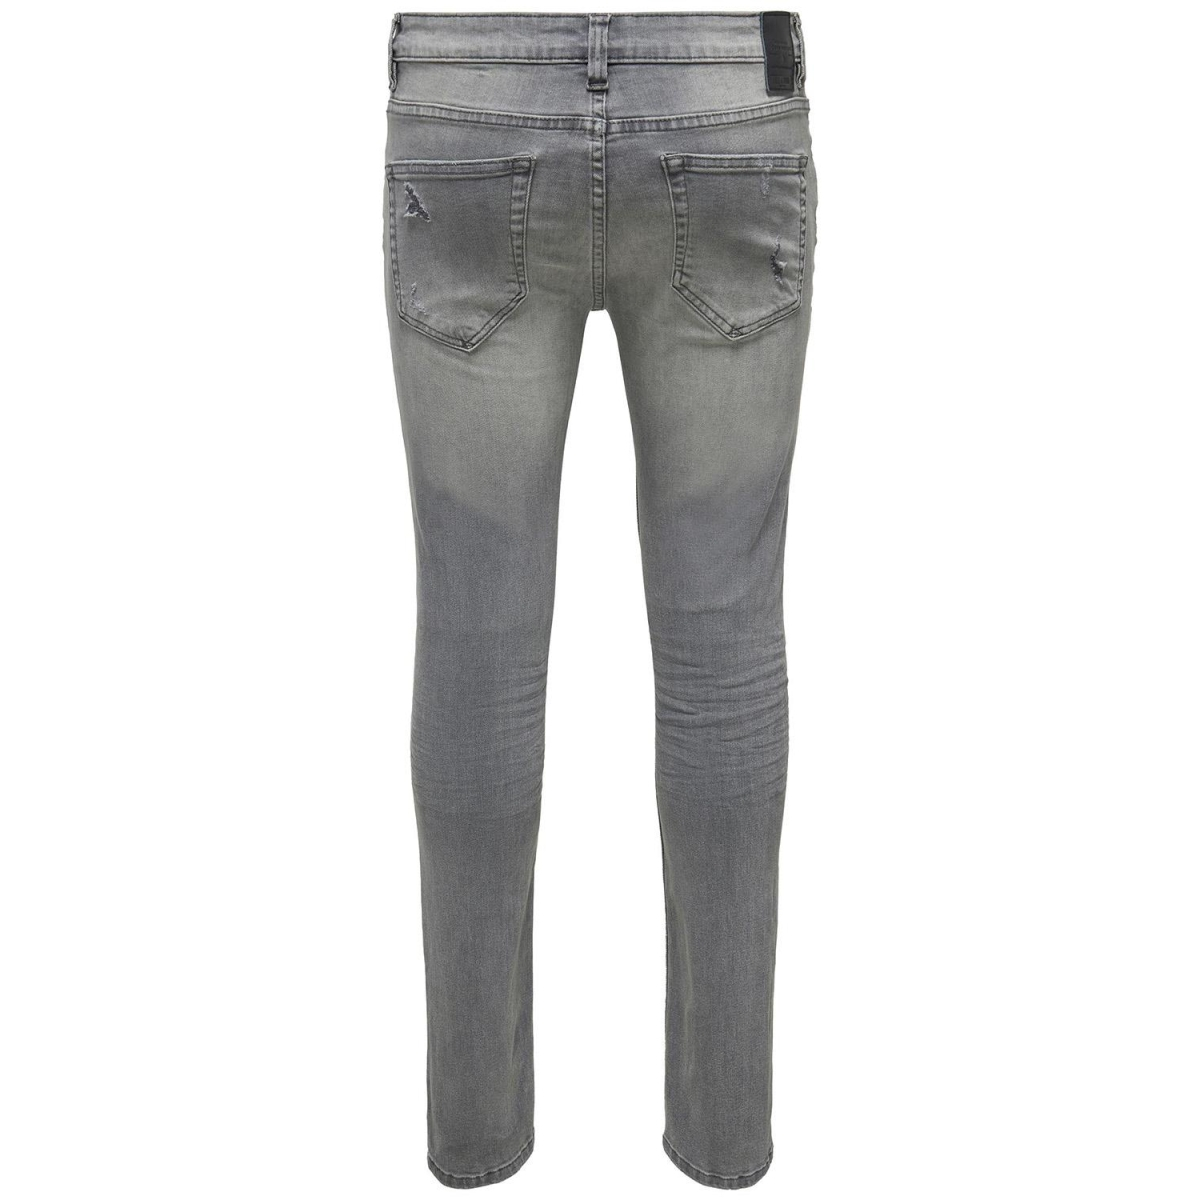 onsloom grey dcc 6525 noos 22016525 only & sons jeans grey denim